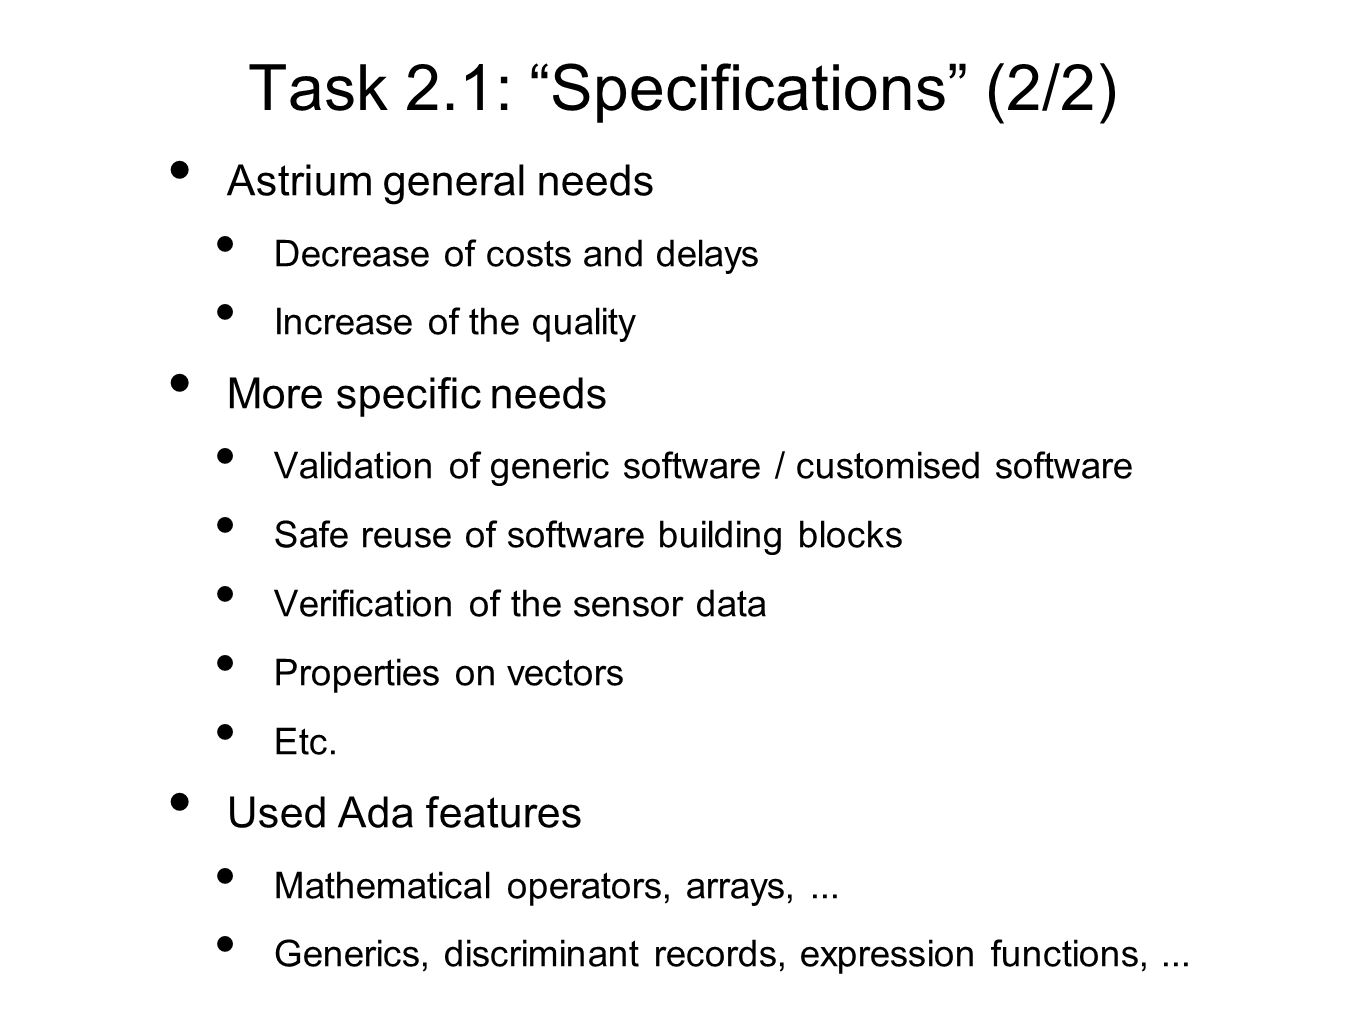 Task 2.1: Specifications (2/2)